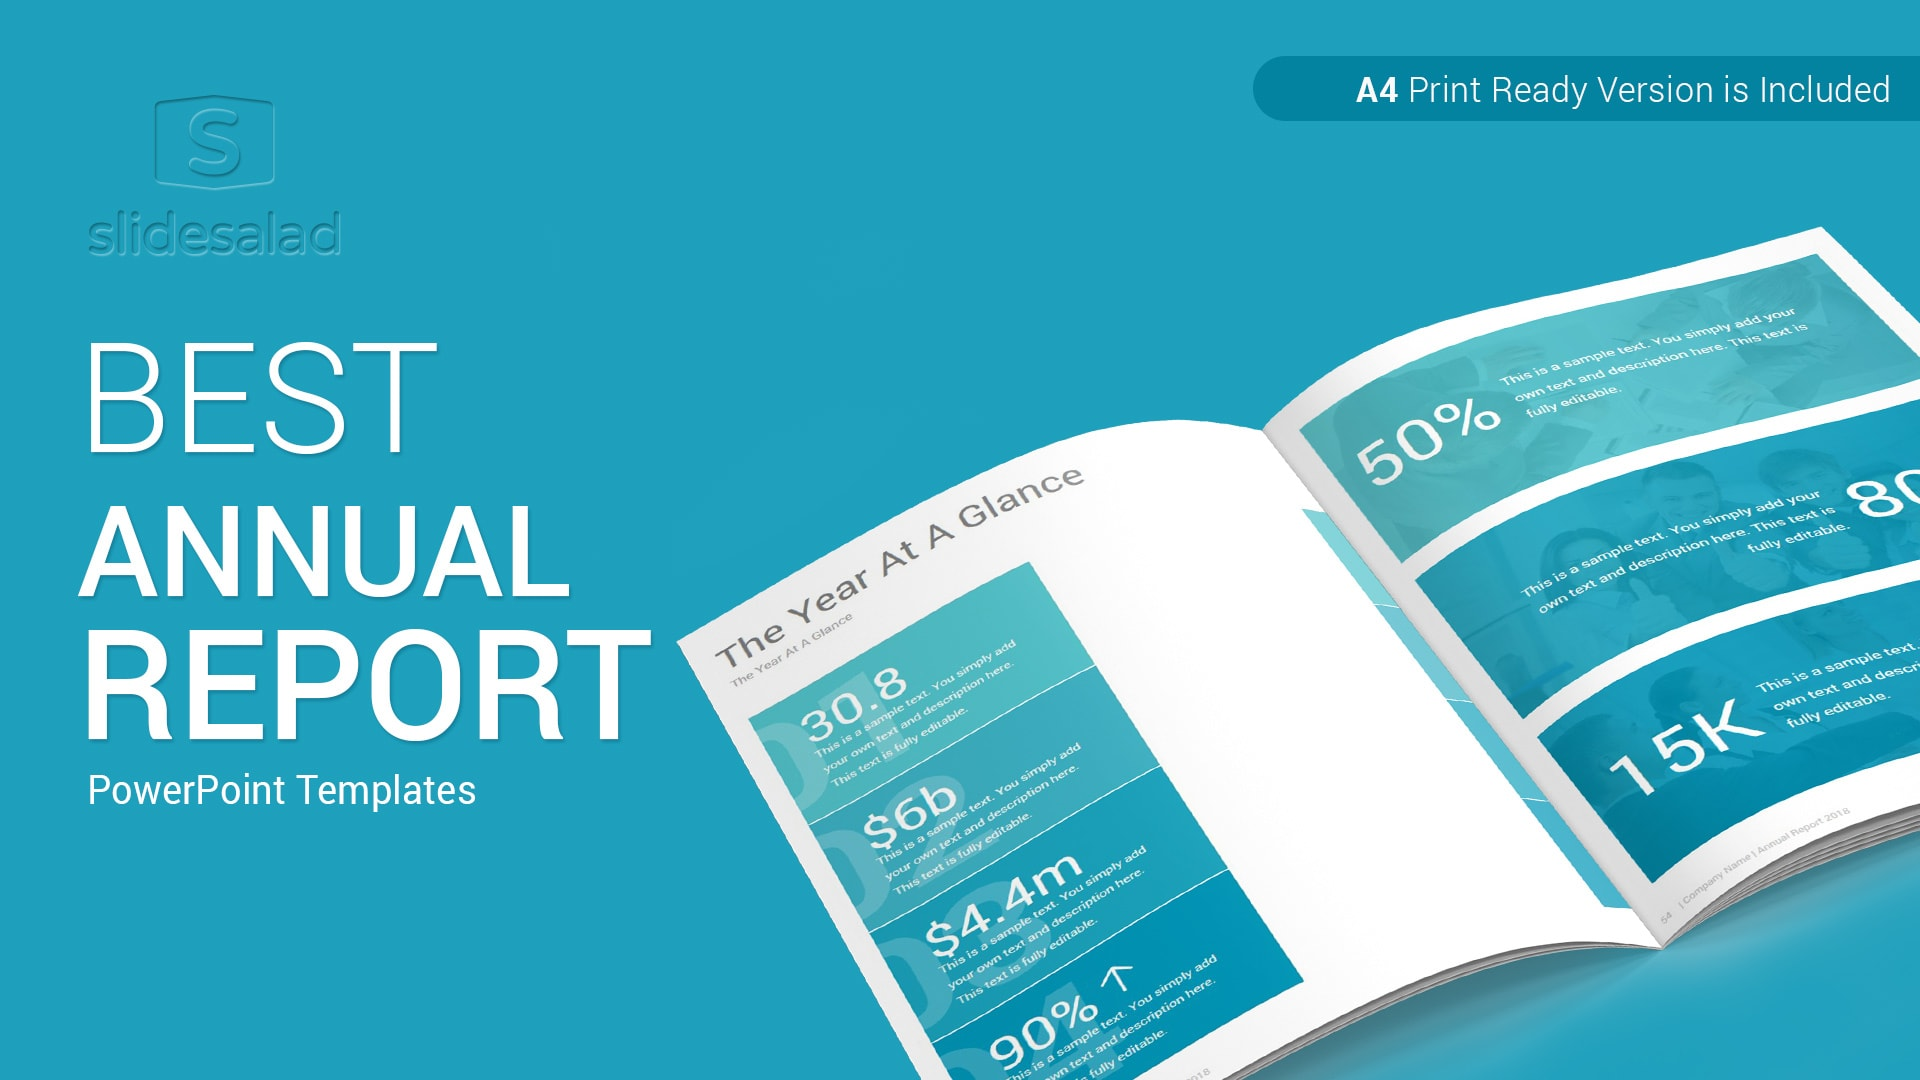 Annual Report PowerPoint Presentation Templates - Top PPT Slideshow Templates